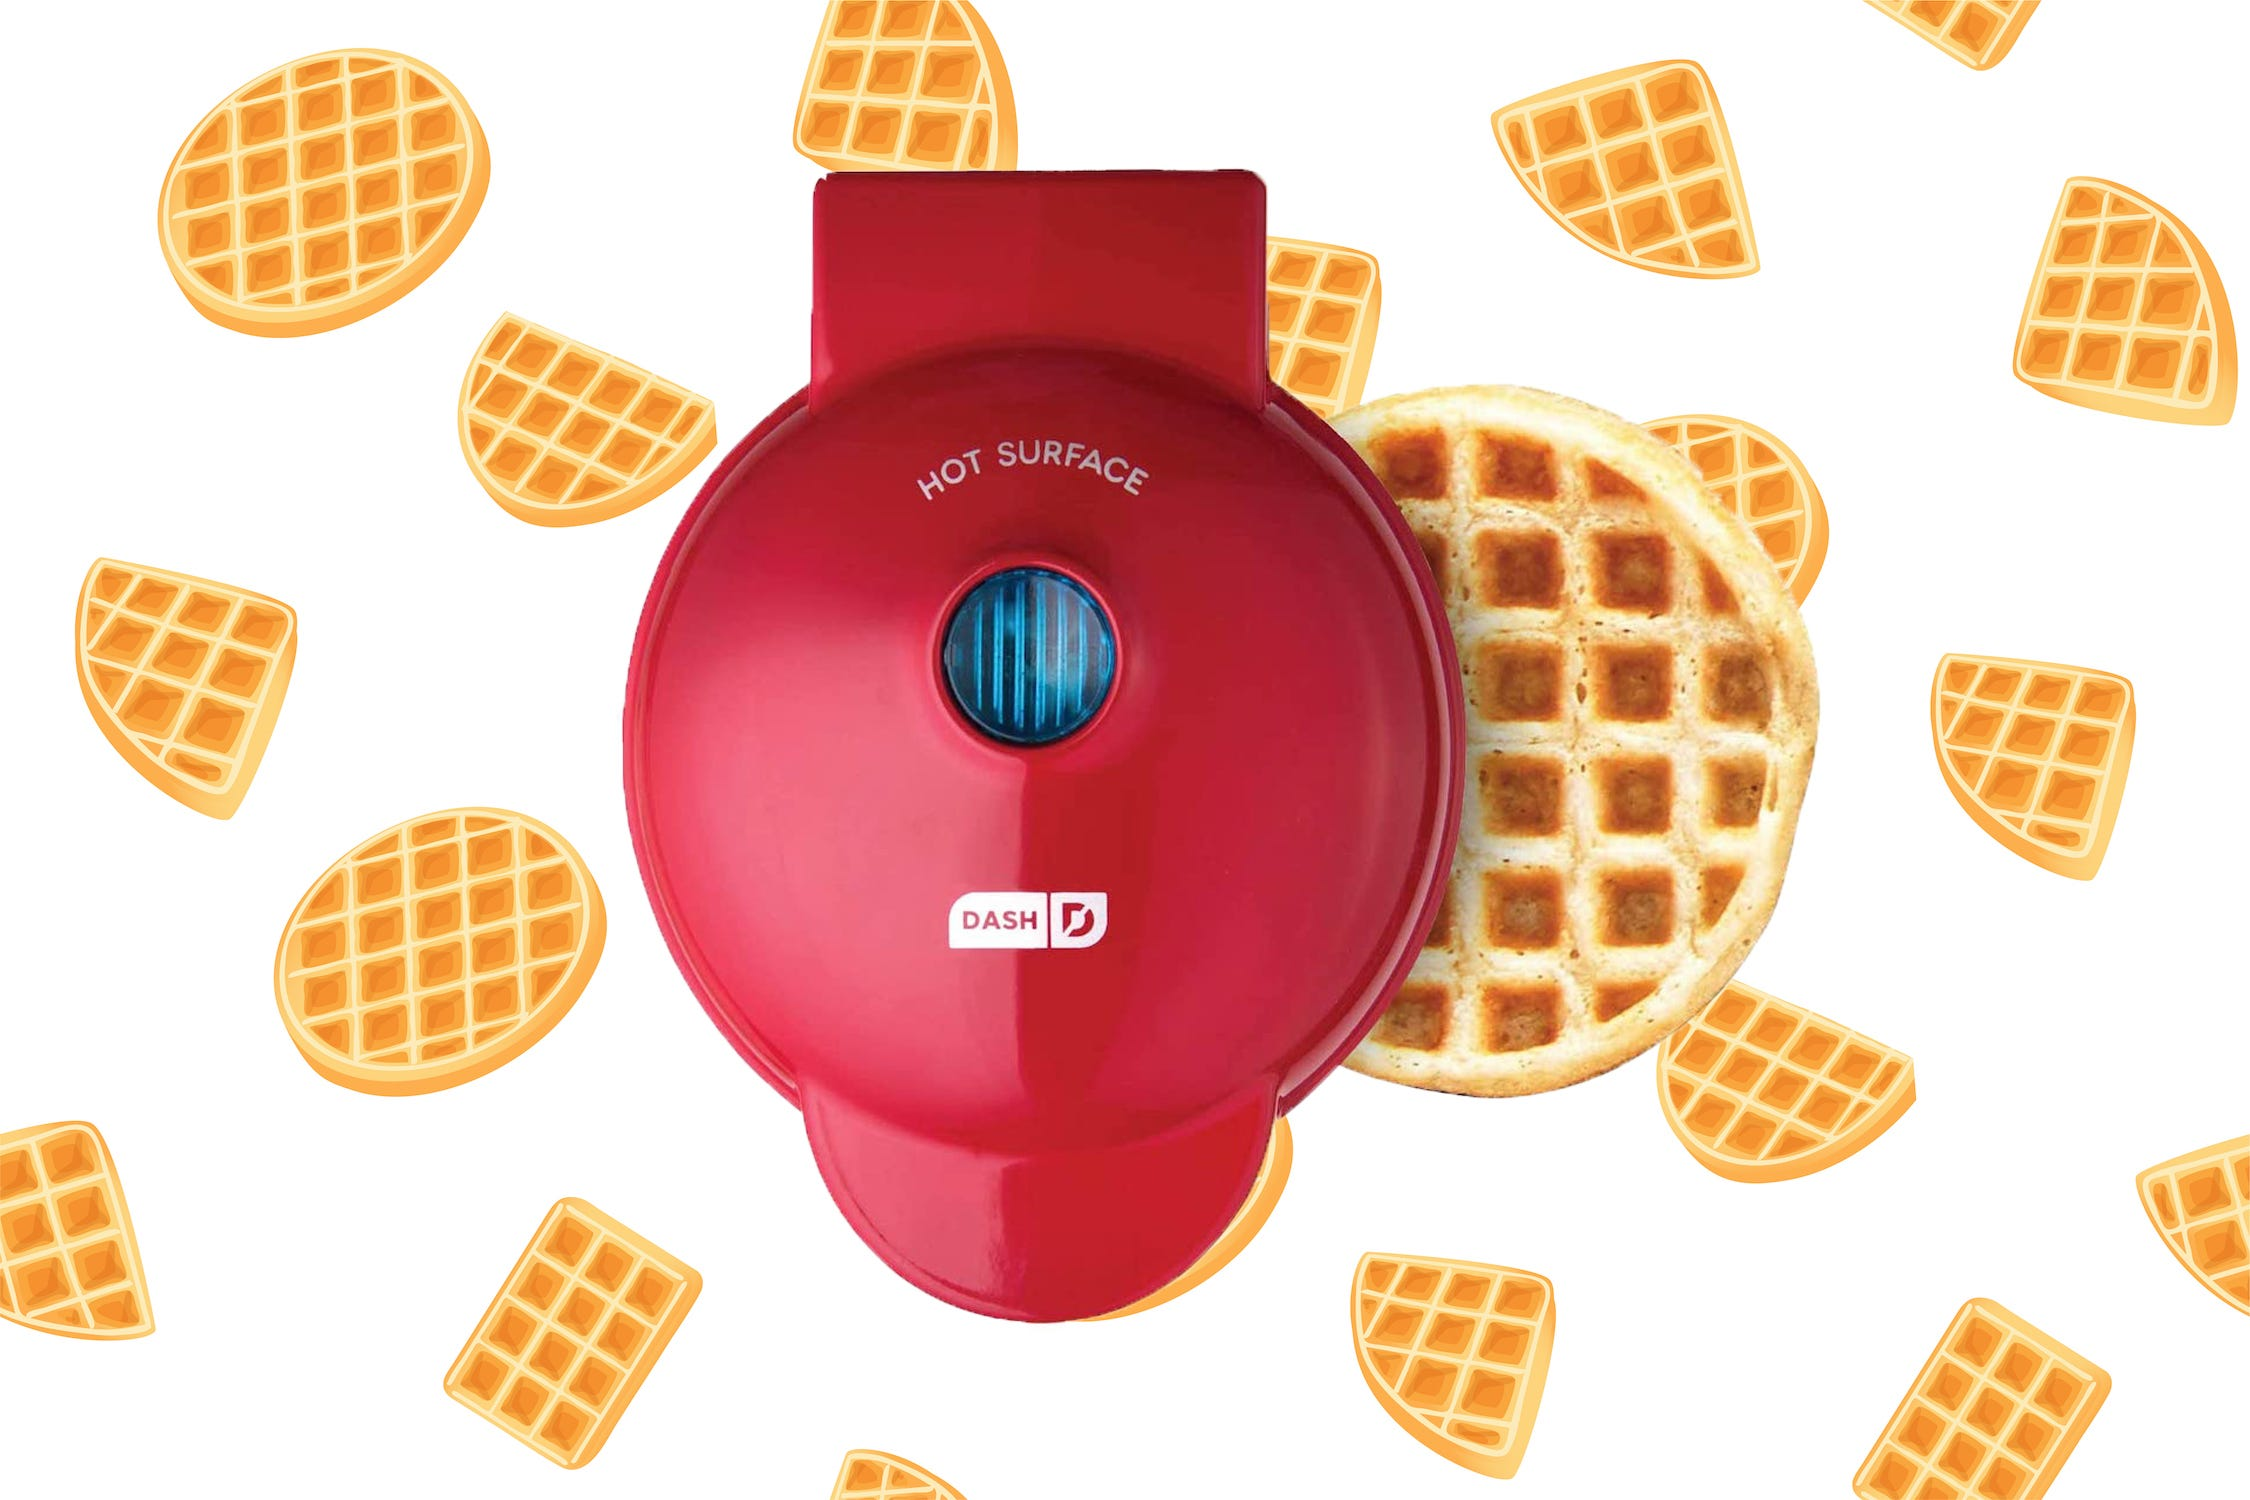 Readers adore this mini waffle maker—and it's on sale for $10 today